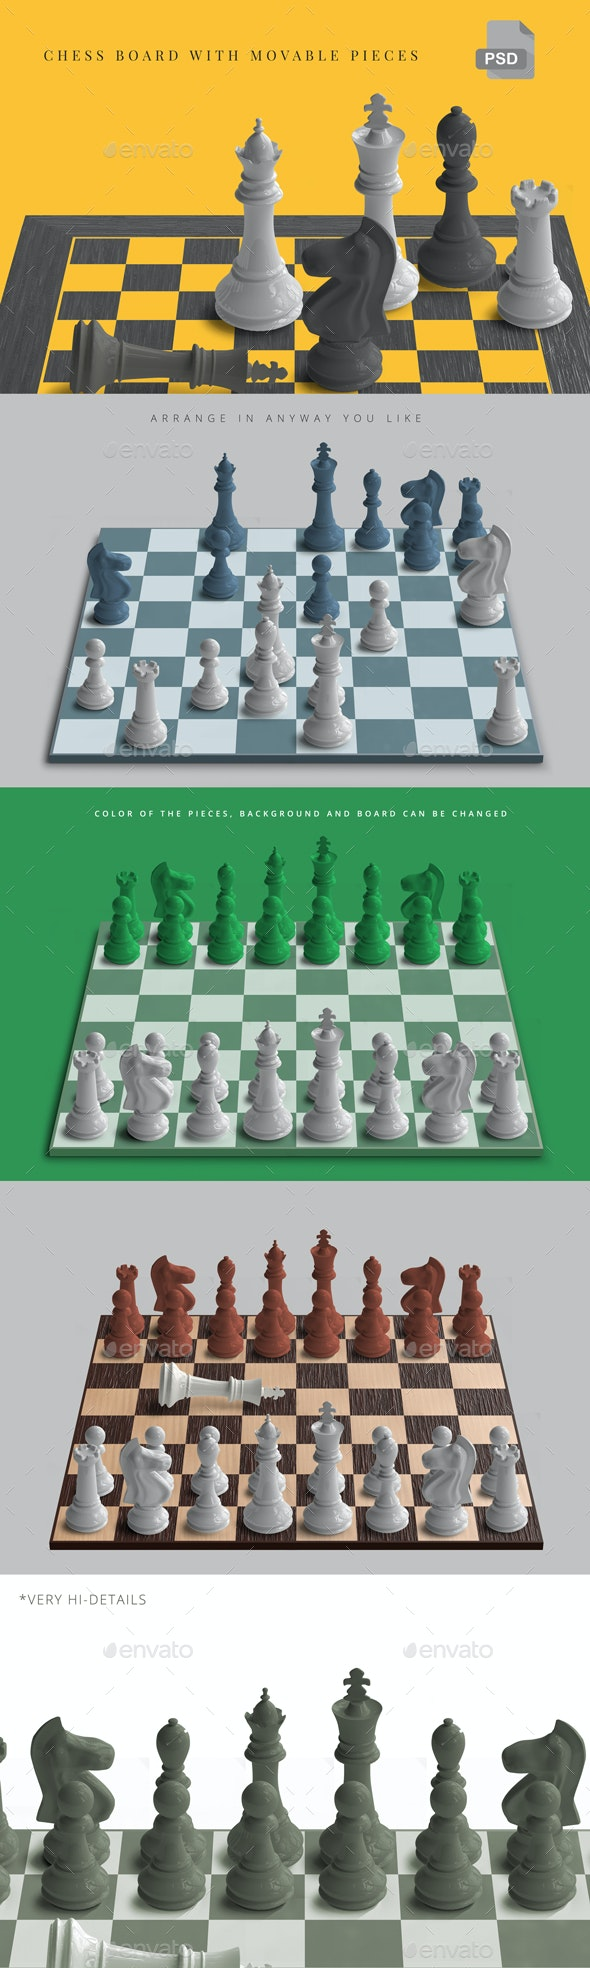 Movable Chess Pieces / Chess Mockup - Miscellaneous Product Mock-Ups